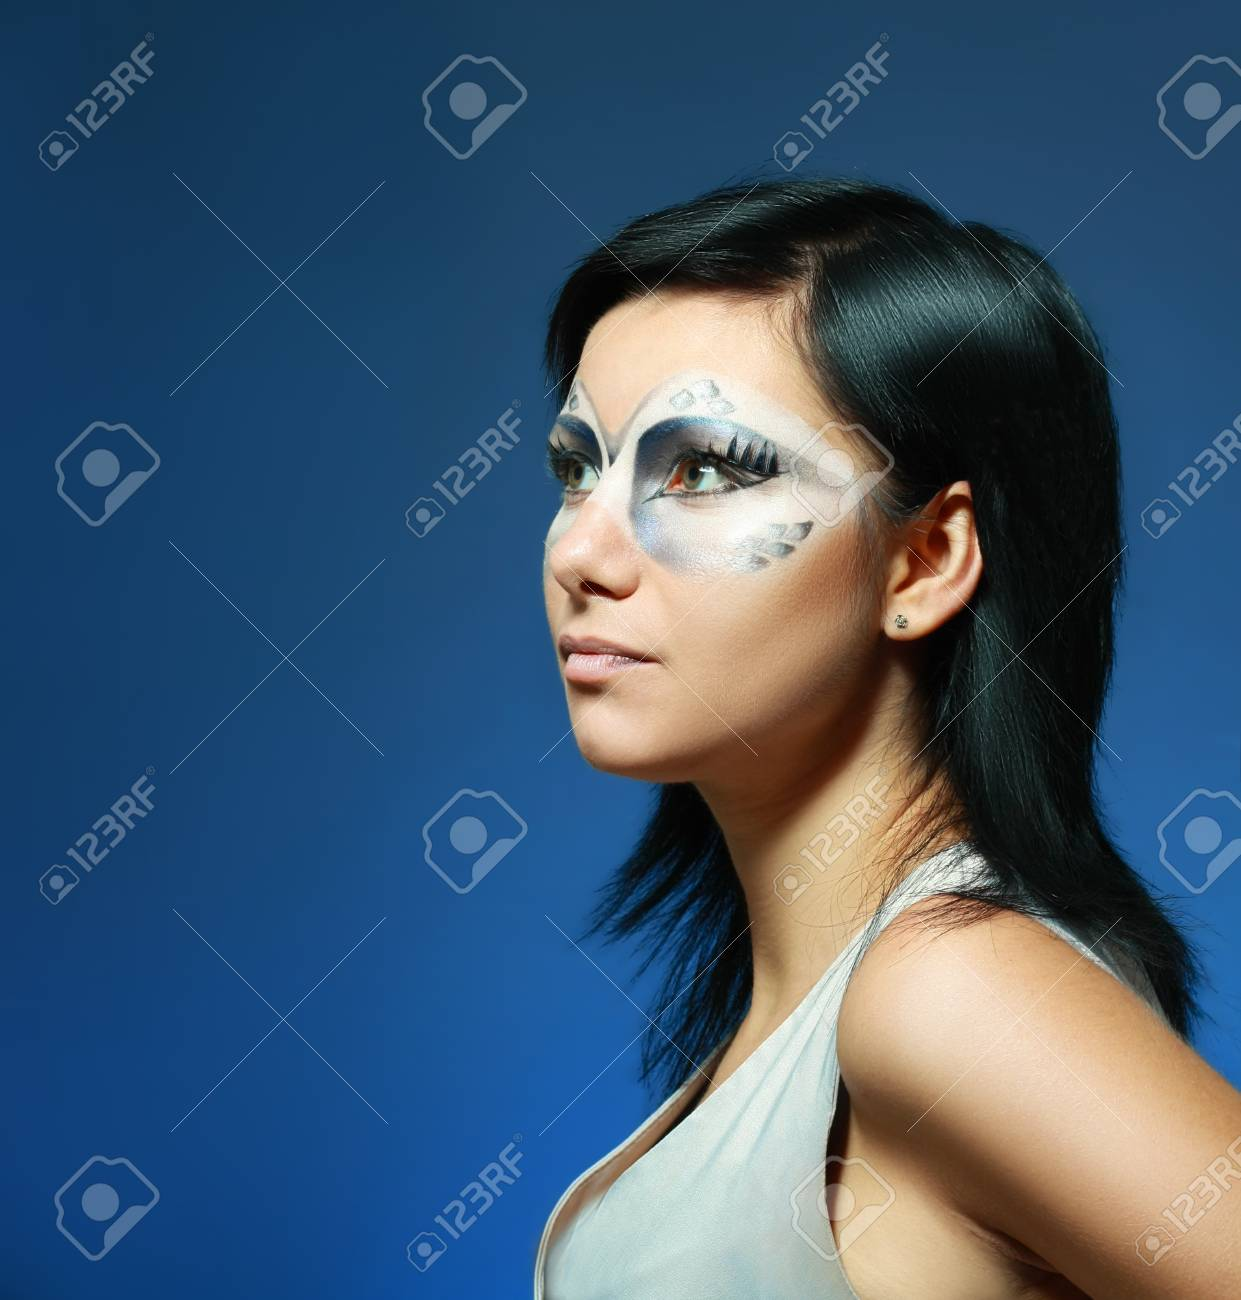 beautiful woman with art snake make up against dark background Stock Photo - 17087554